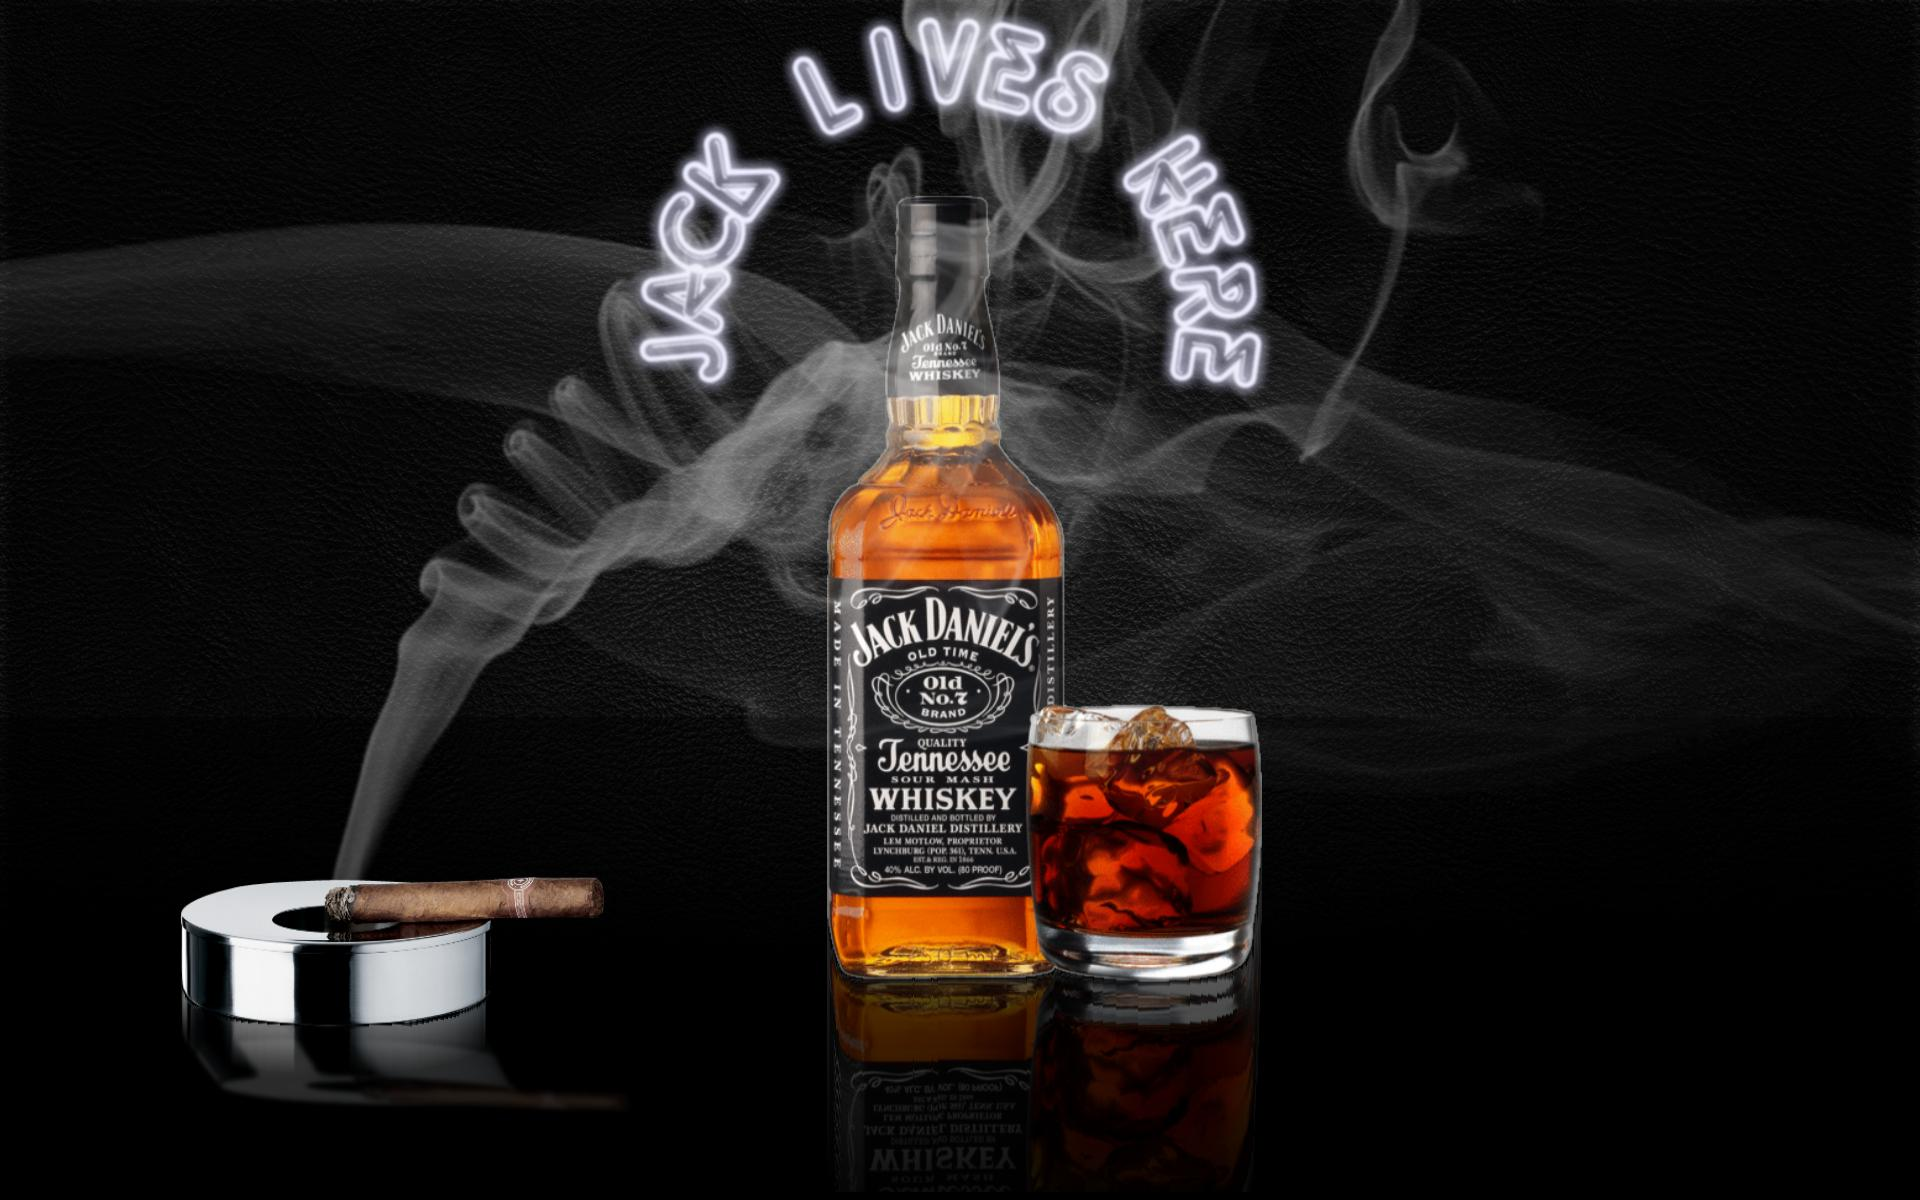 jack daniels hd wallpaper free download hd free wallpapers download